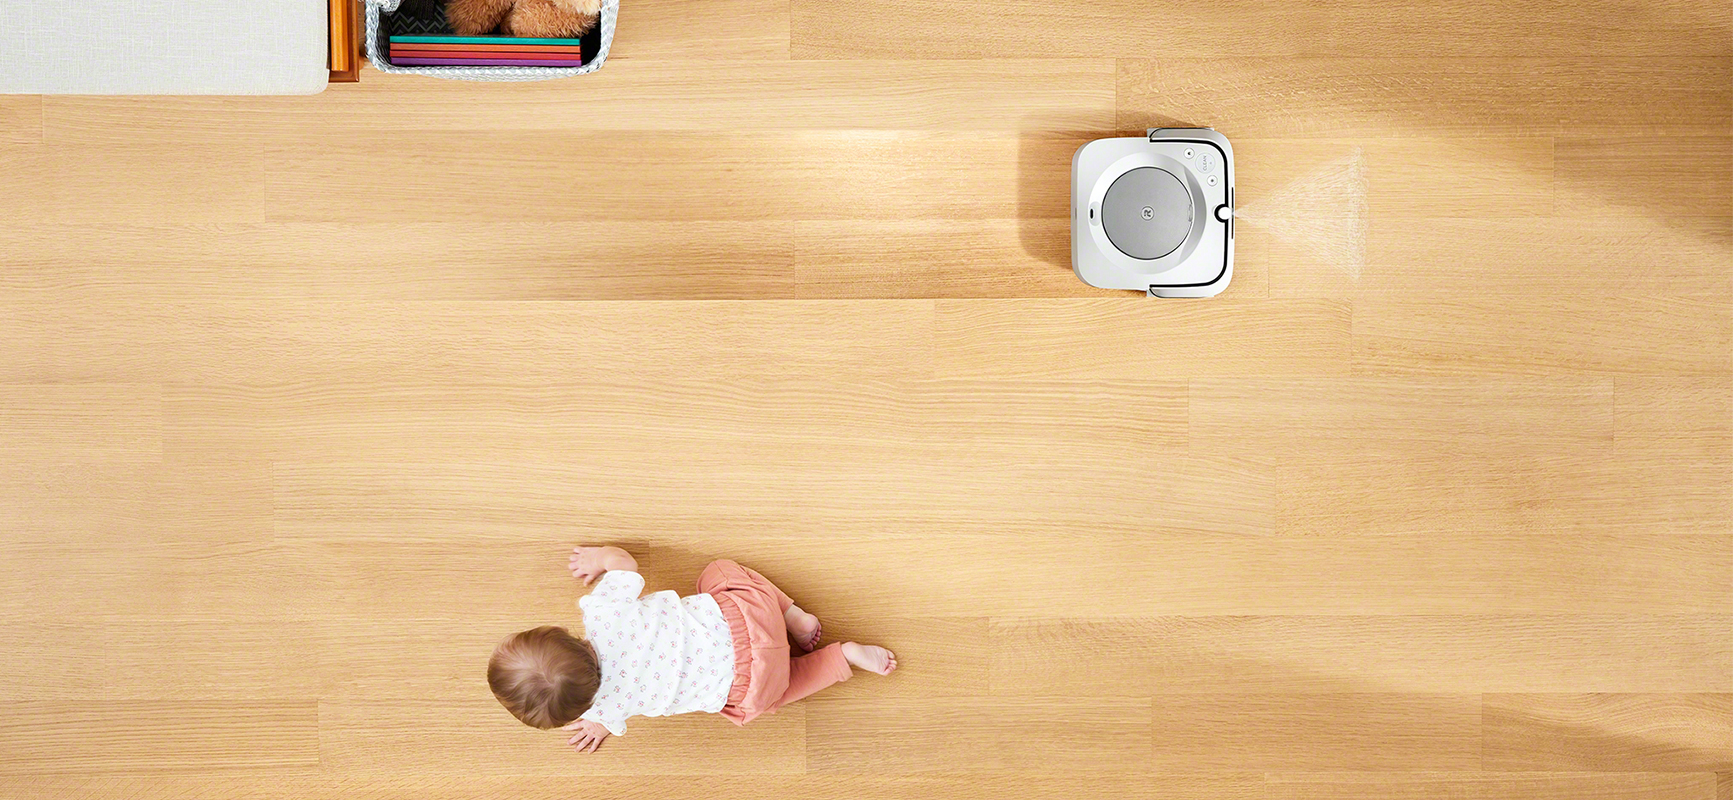 Braava m6 mopping floor while baby is crawling